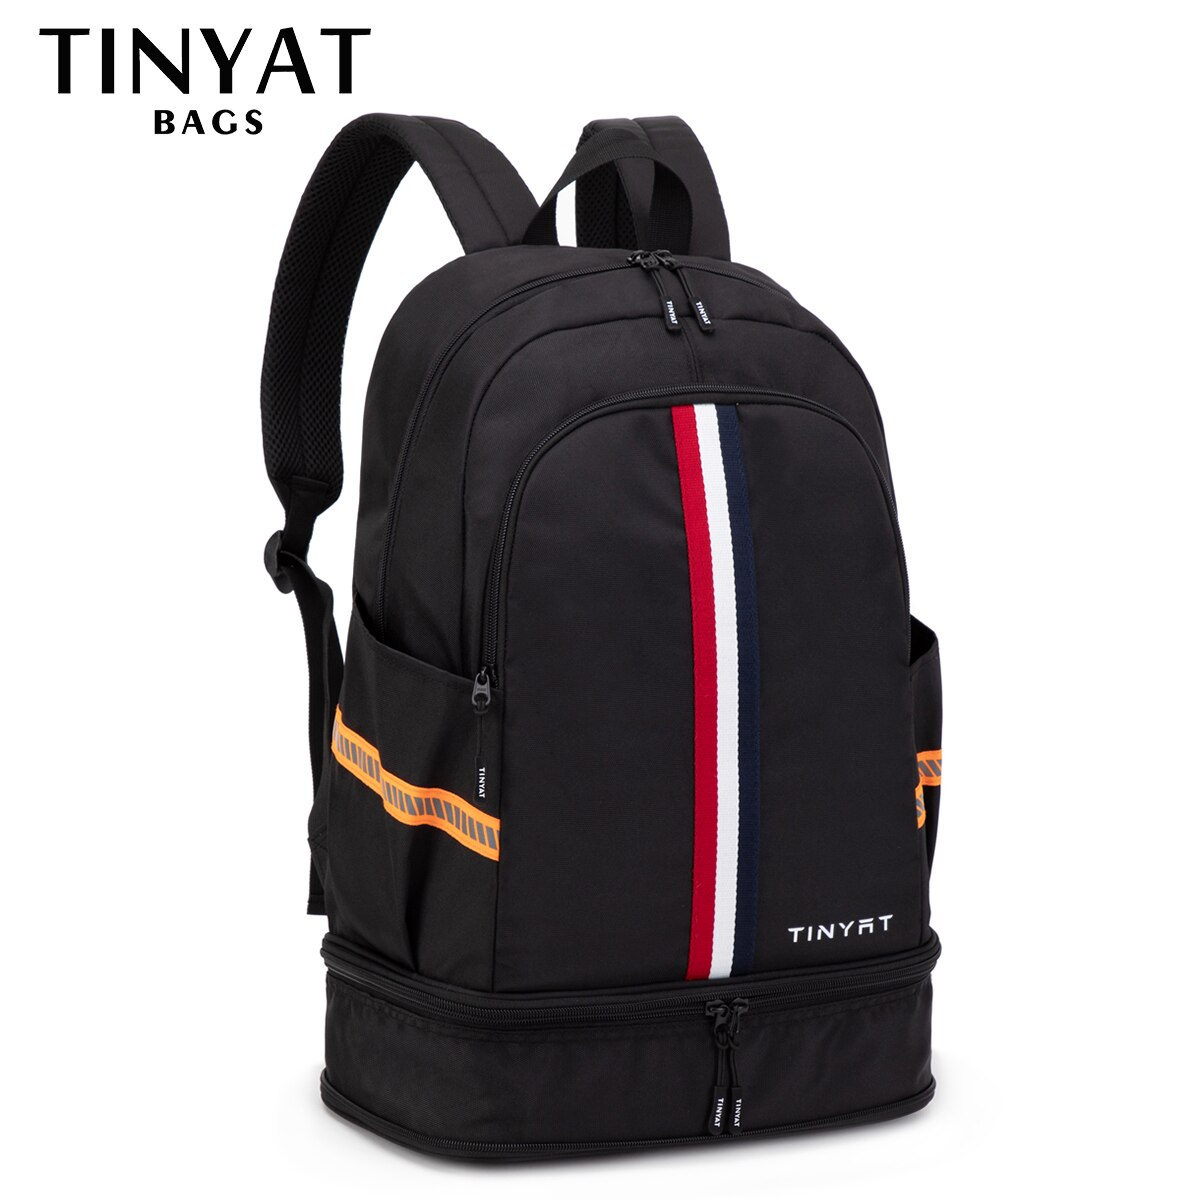 TINYTA Men's backpack Male bag Large Sports Travel backpack Shoes Bag Folded Fitness Backpack School